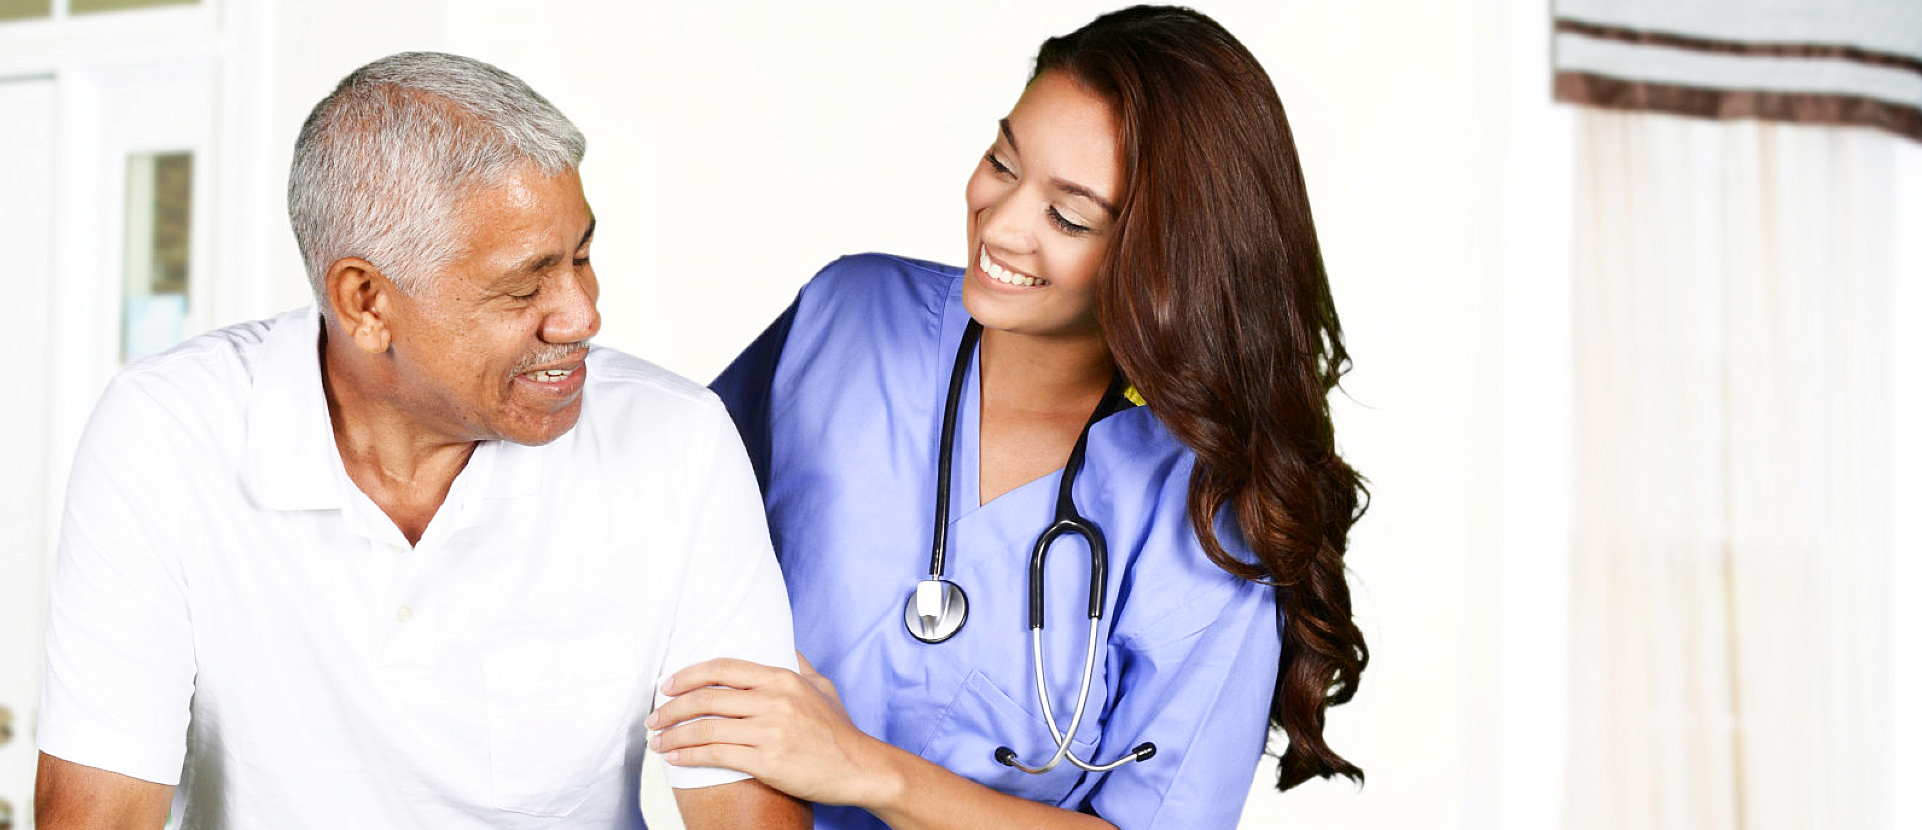 nursing assistant assisting elderly man